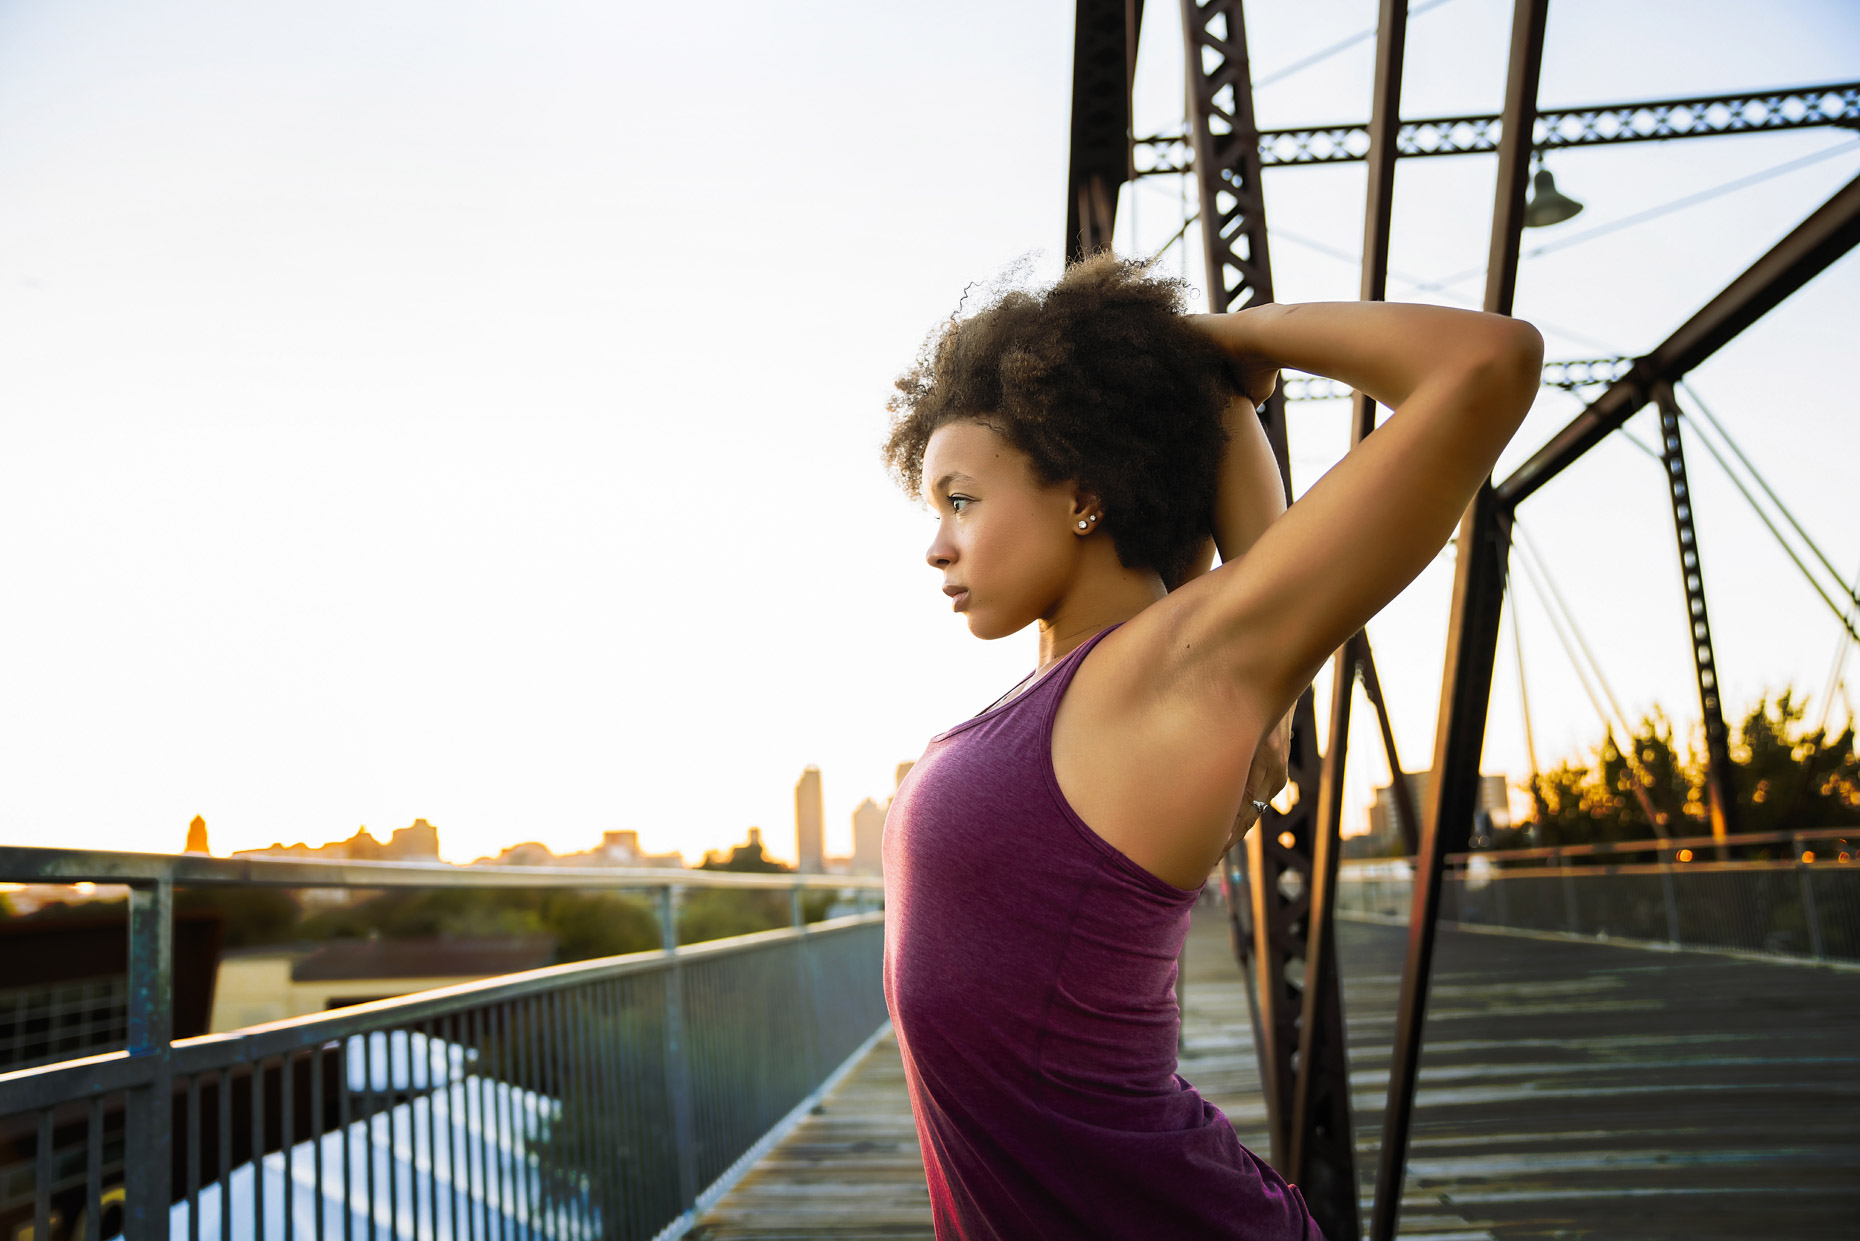 Woman in tank top stretching arms on bridge overlooking city